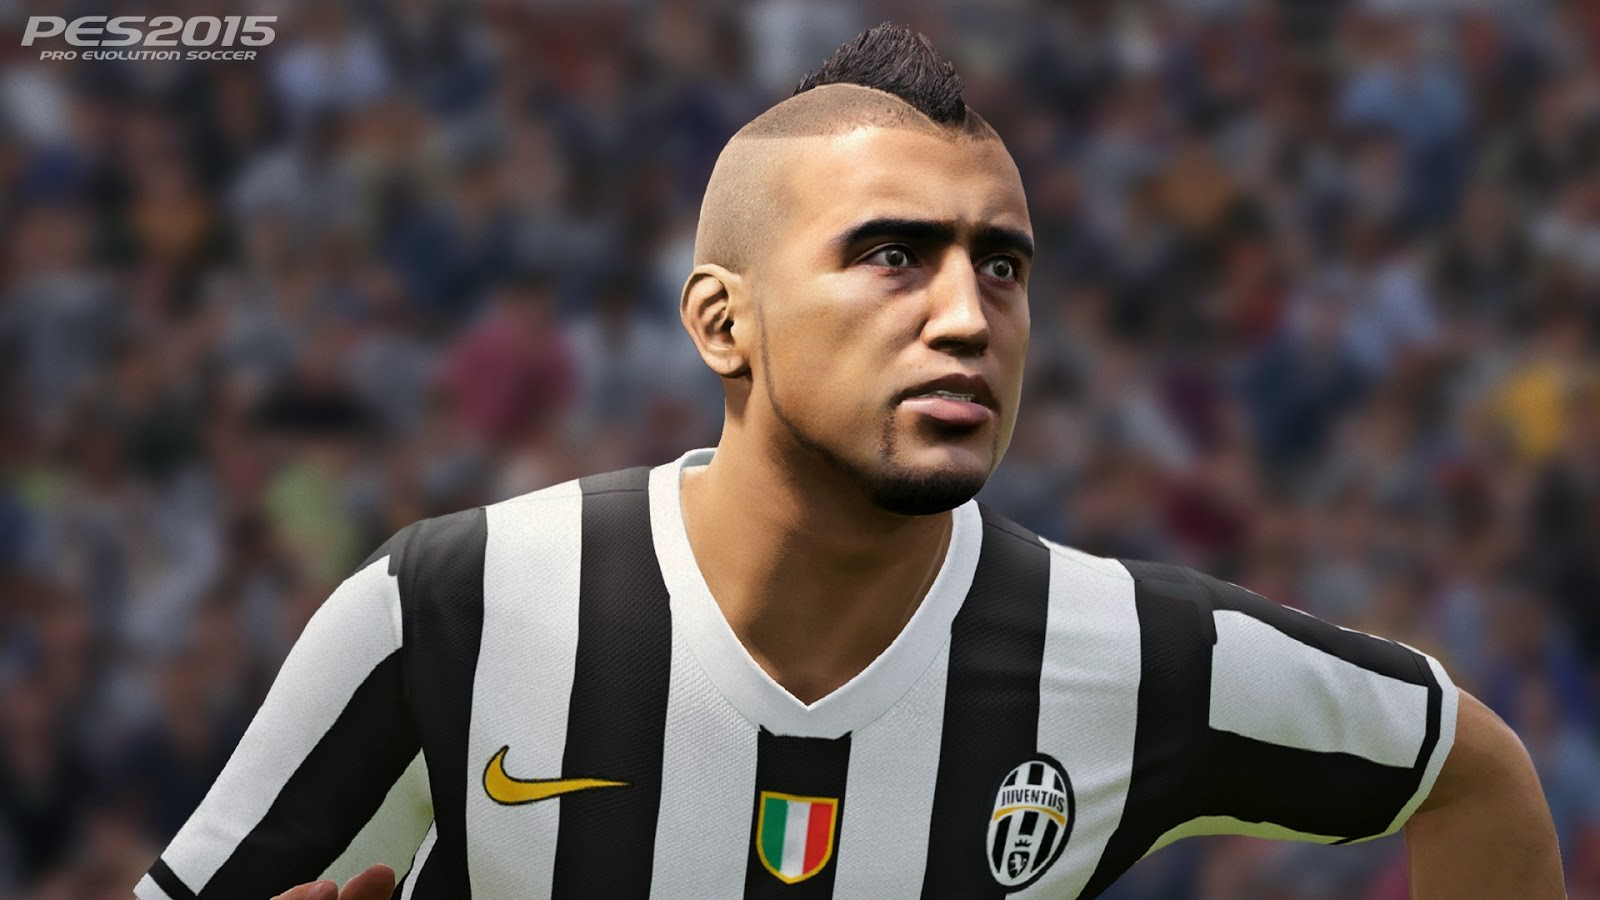 Gameplay de Pro Evolution Soccer 2015 [FILTRACIONES]